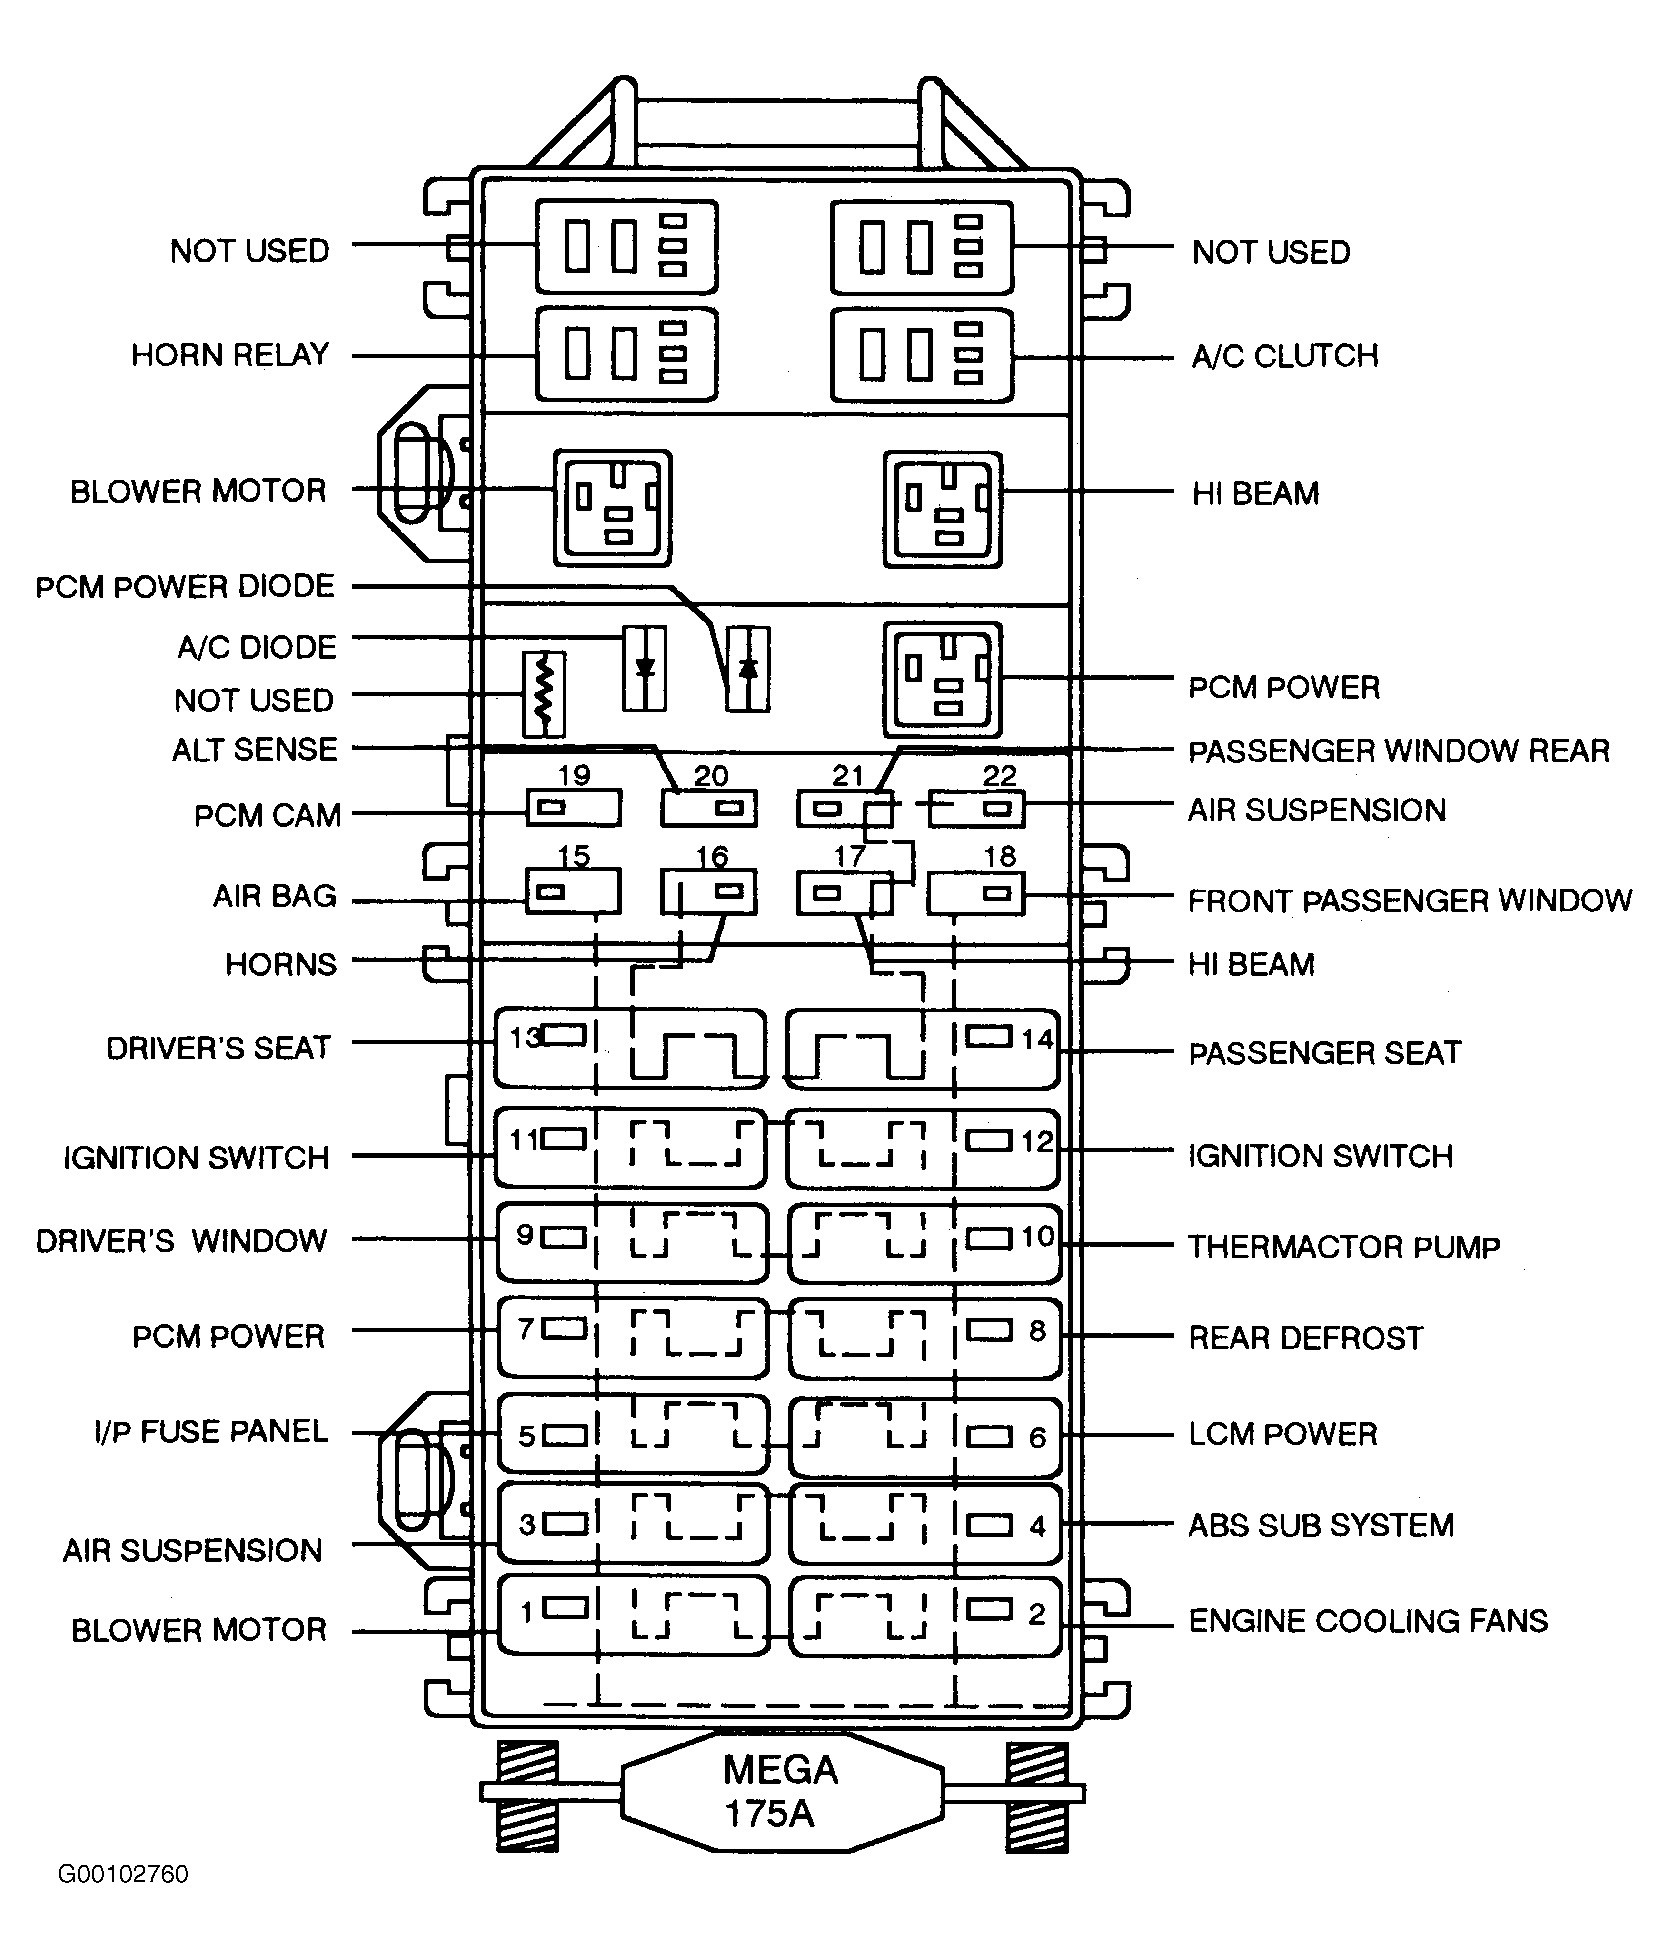 05 Grand Prix Stereo Wiring Diagram